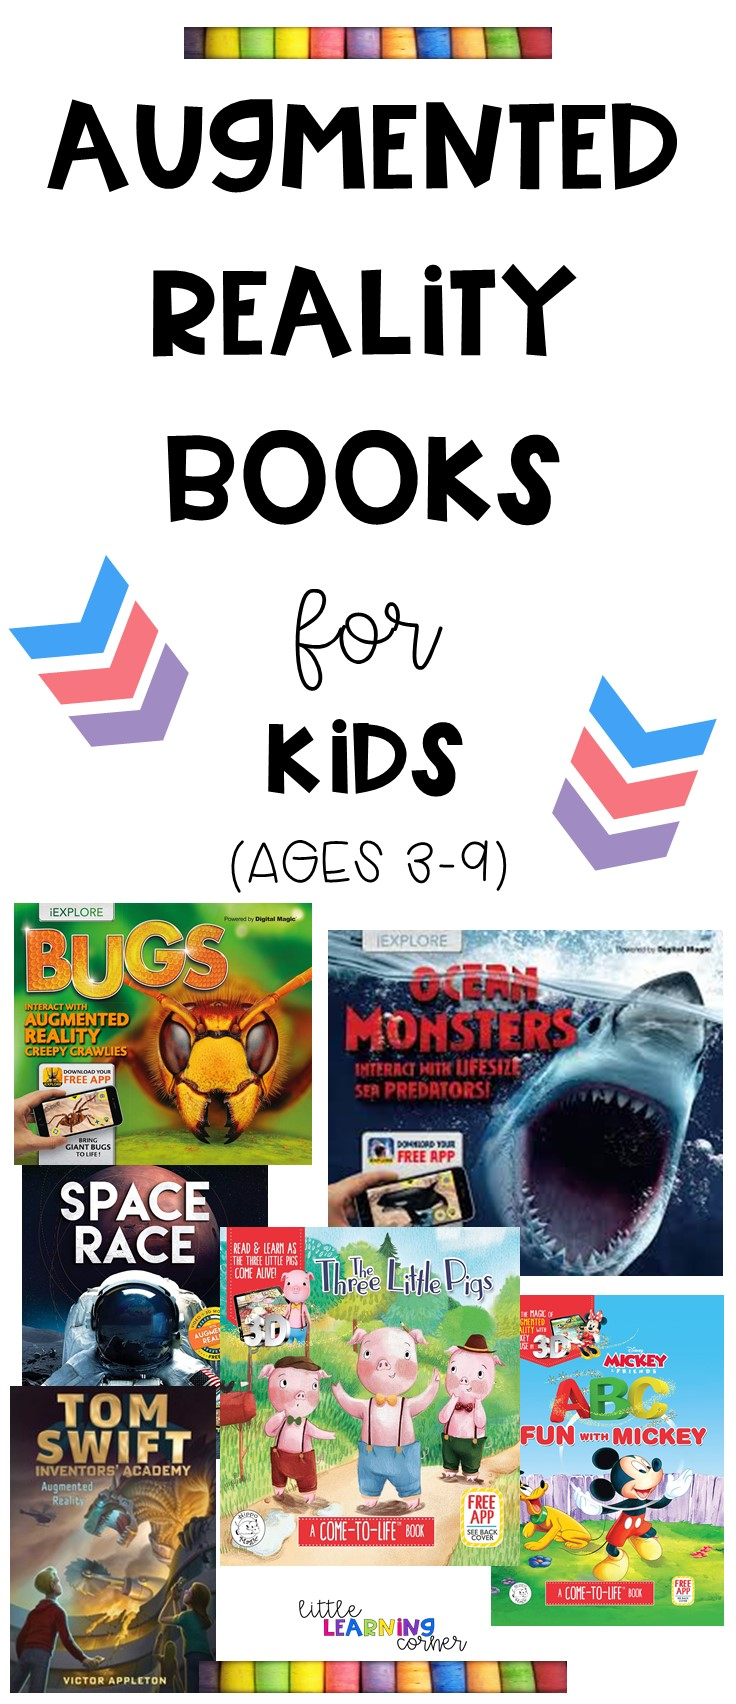 augmented-reality-books-for-kids-pin-2